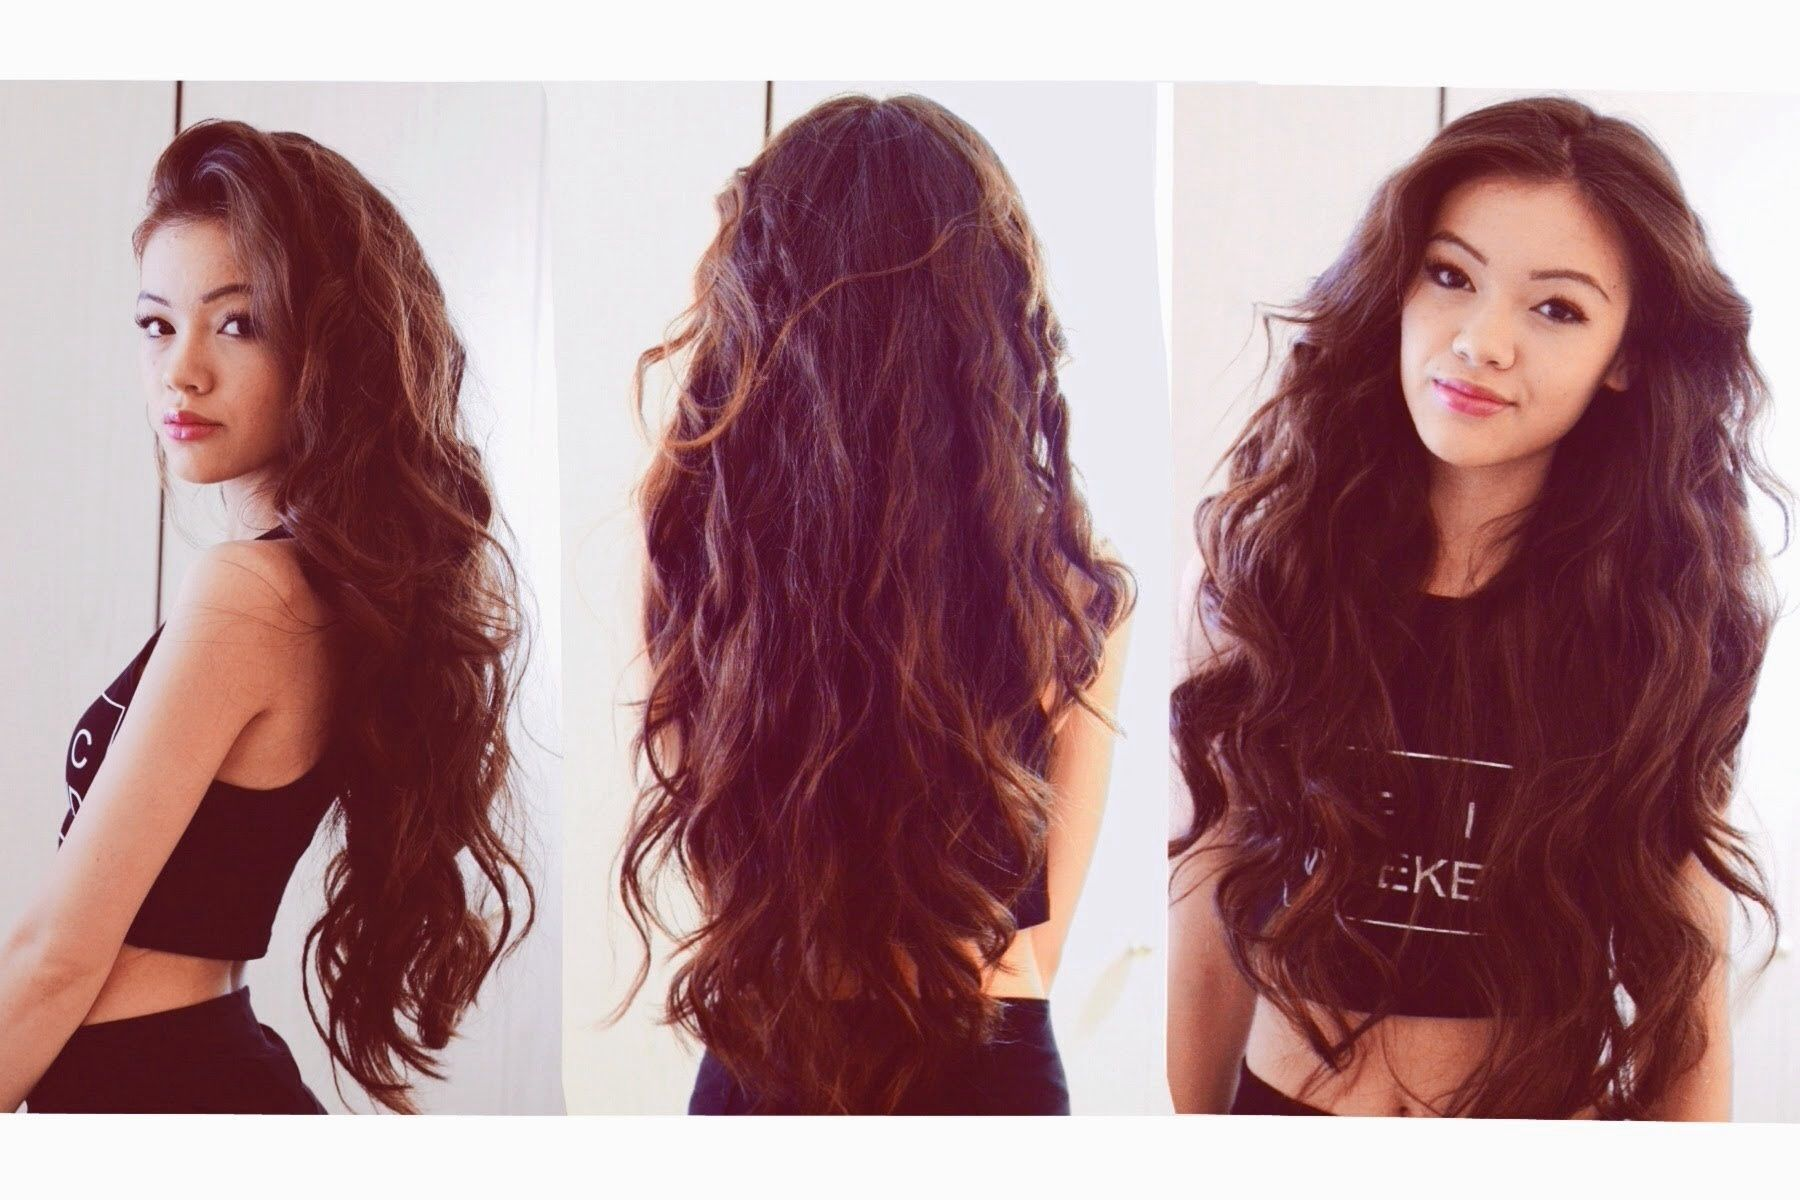 I have the hair like that ♡